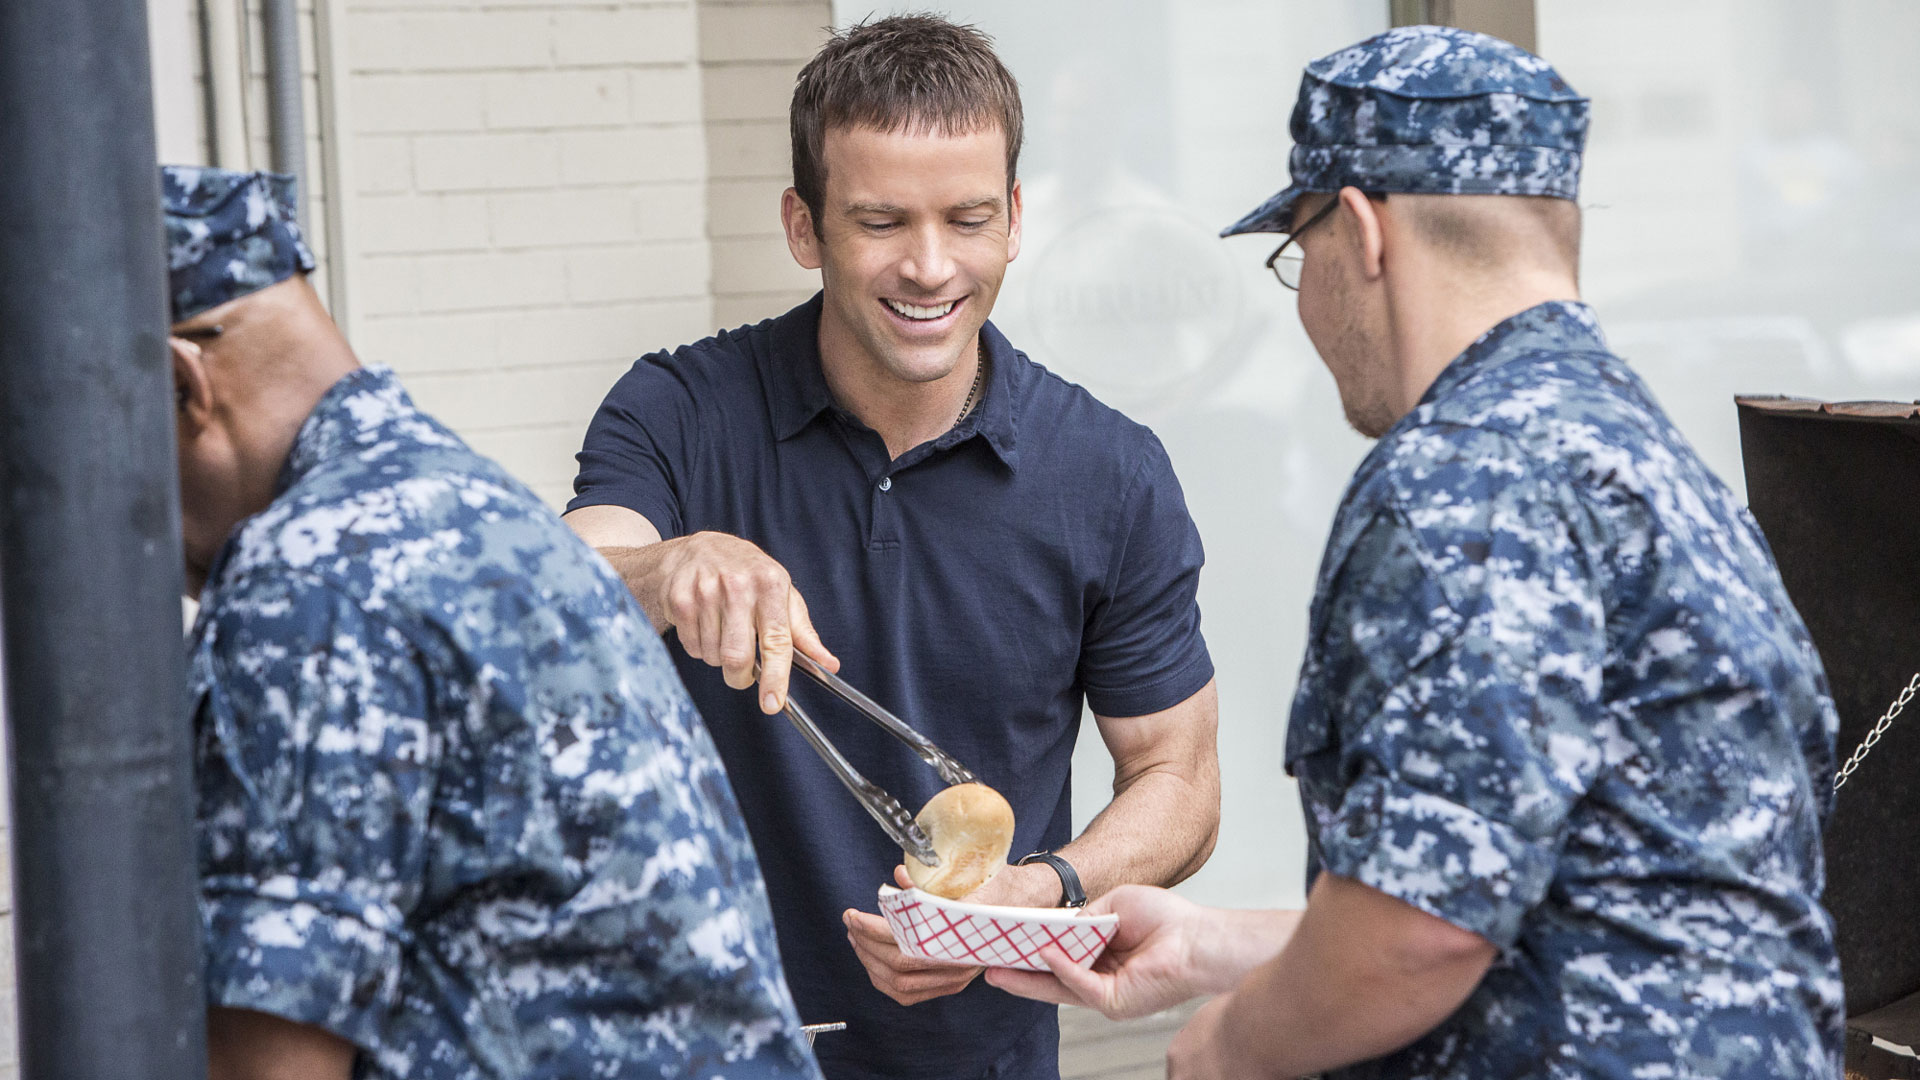 Lasalle serves food to military personnel.